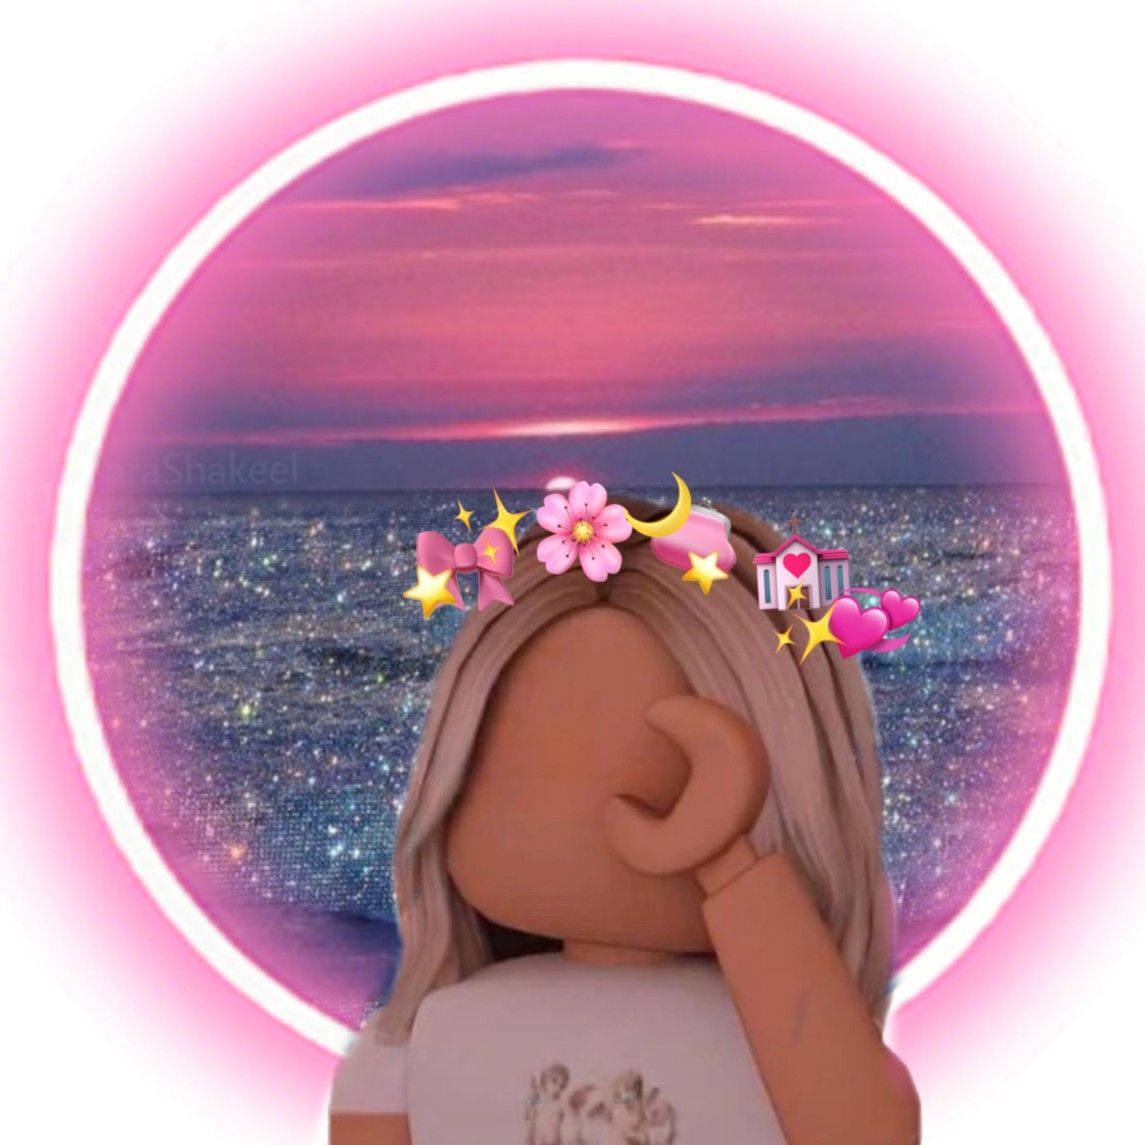 Pink Aesthetic Roblox Avatar In 2020 Cute Tumblr Wallpaper Roblox Pictures Roblox Animation